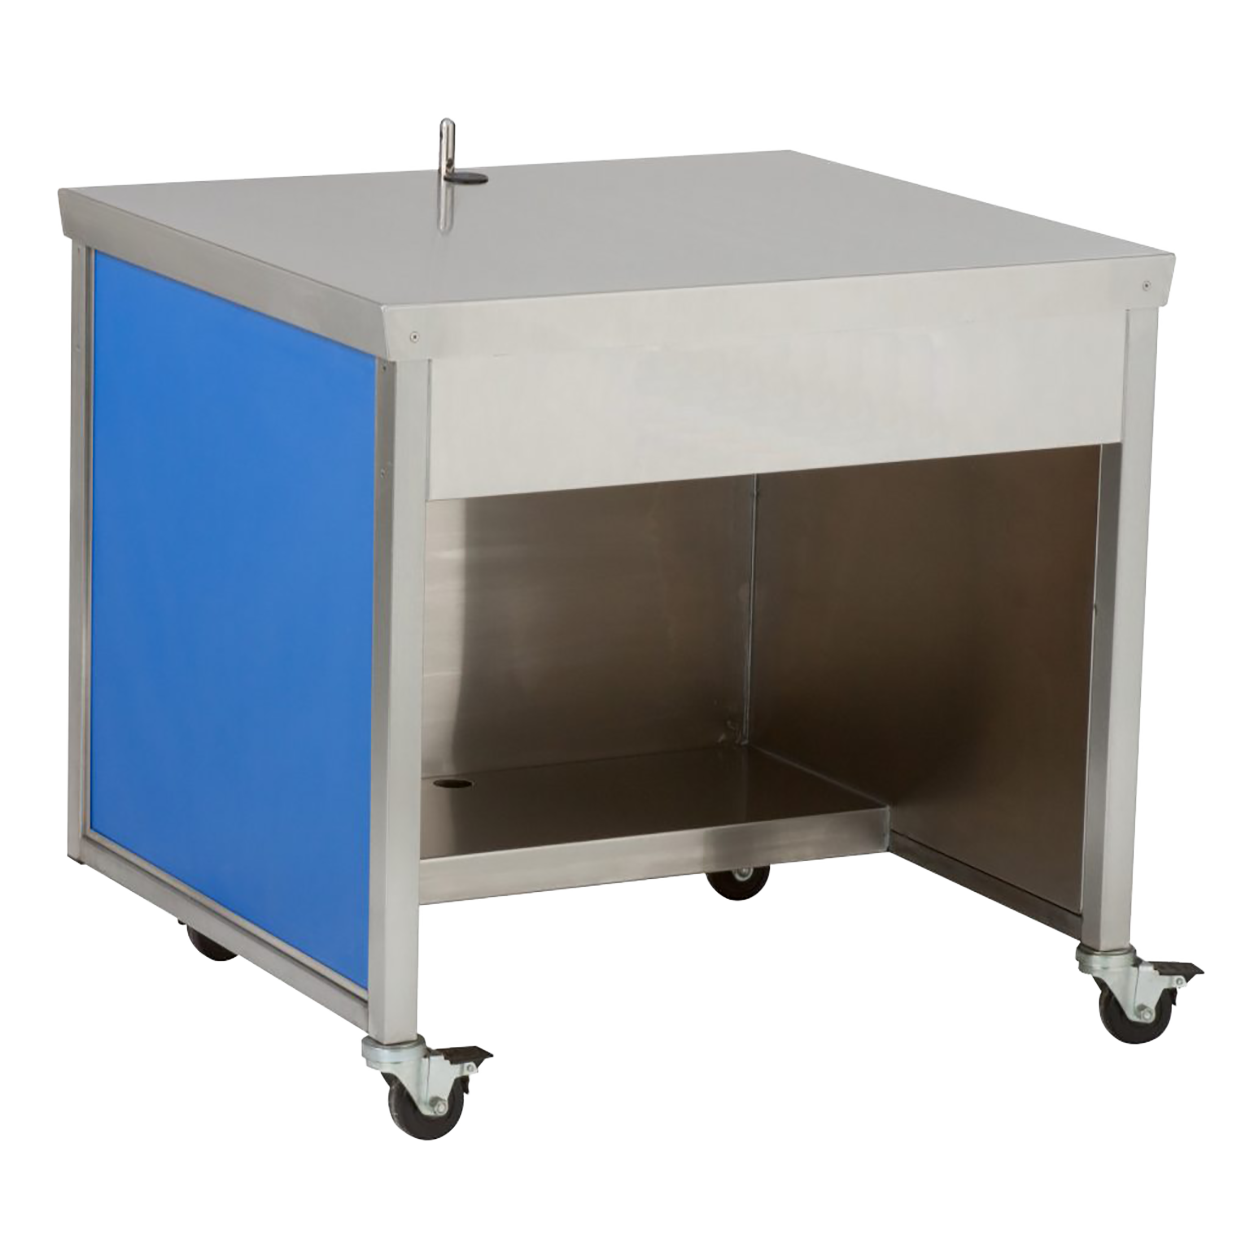 ADA Cashier Stand Cabinet Picture - G.A. Systems, Huntington Beach